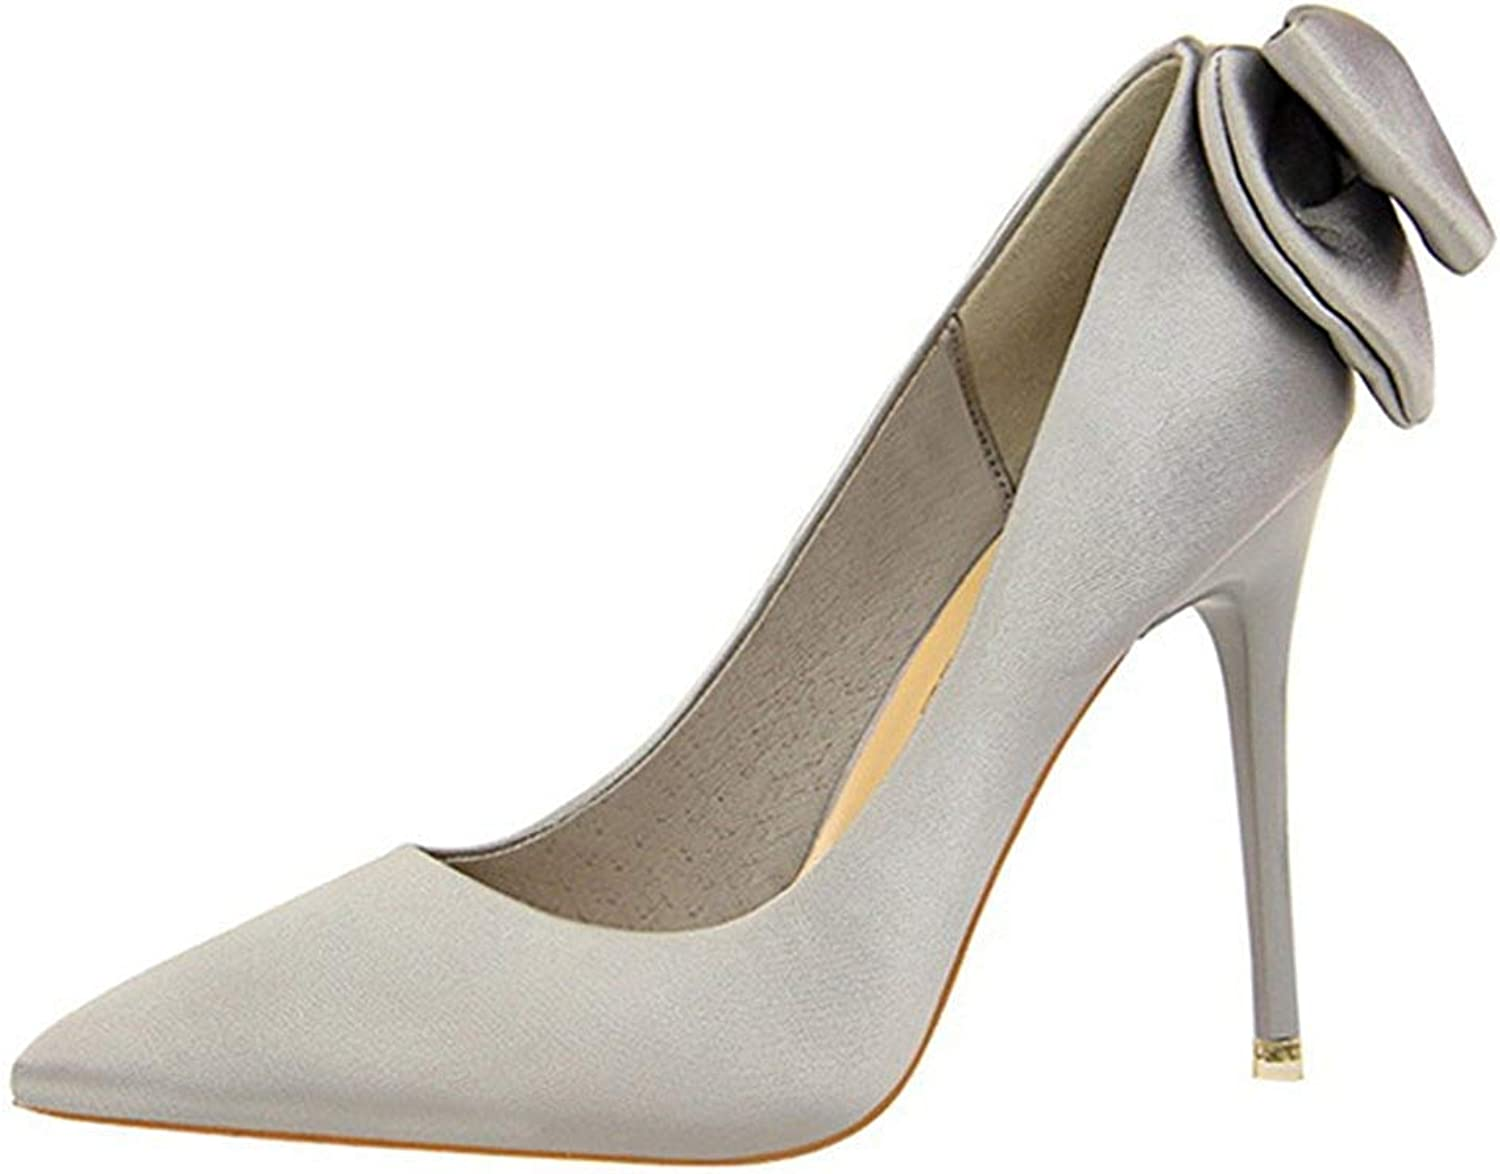 Unm Women's Elegant Dressy Low Cut Stiletto High Heel Pointed Toe Party Bridal Slip On Pumps shoes with Bow